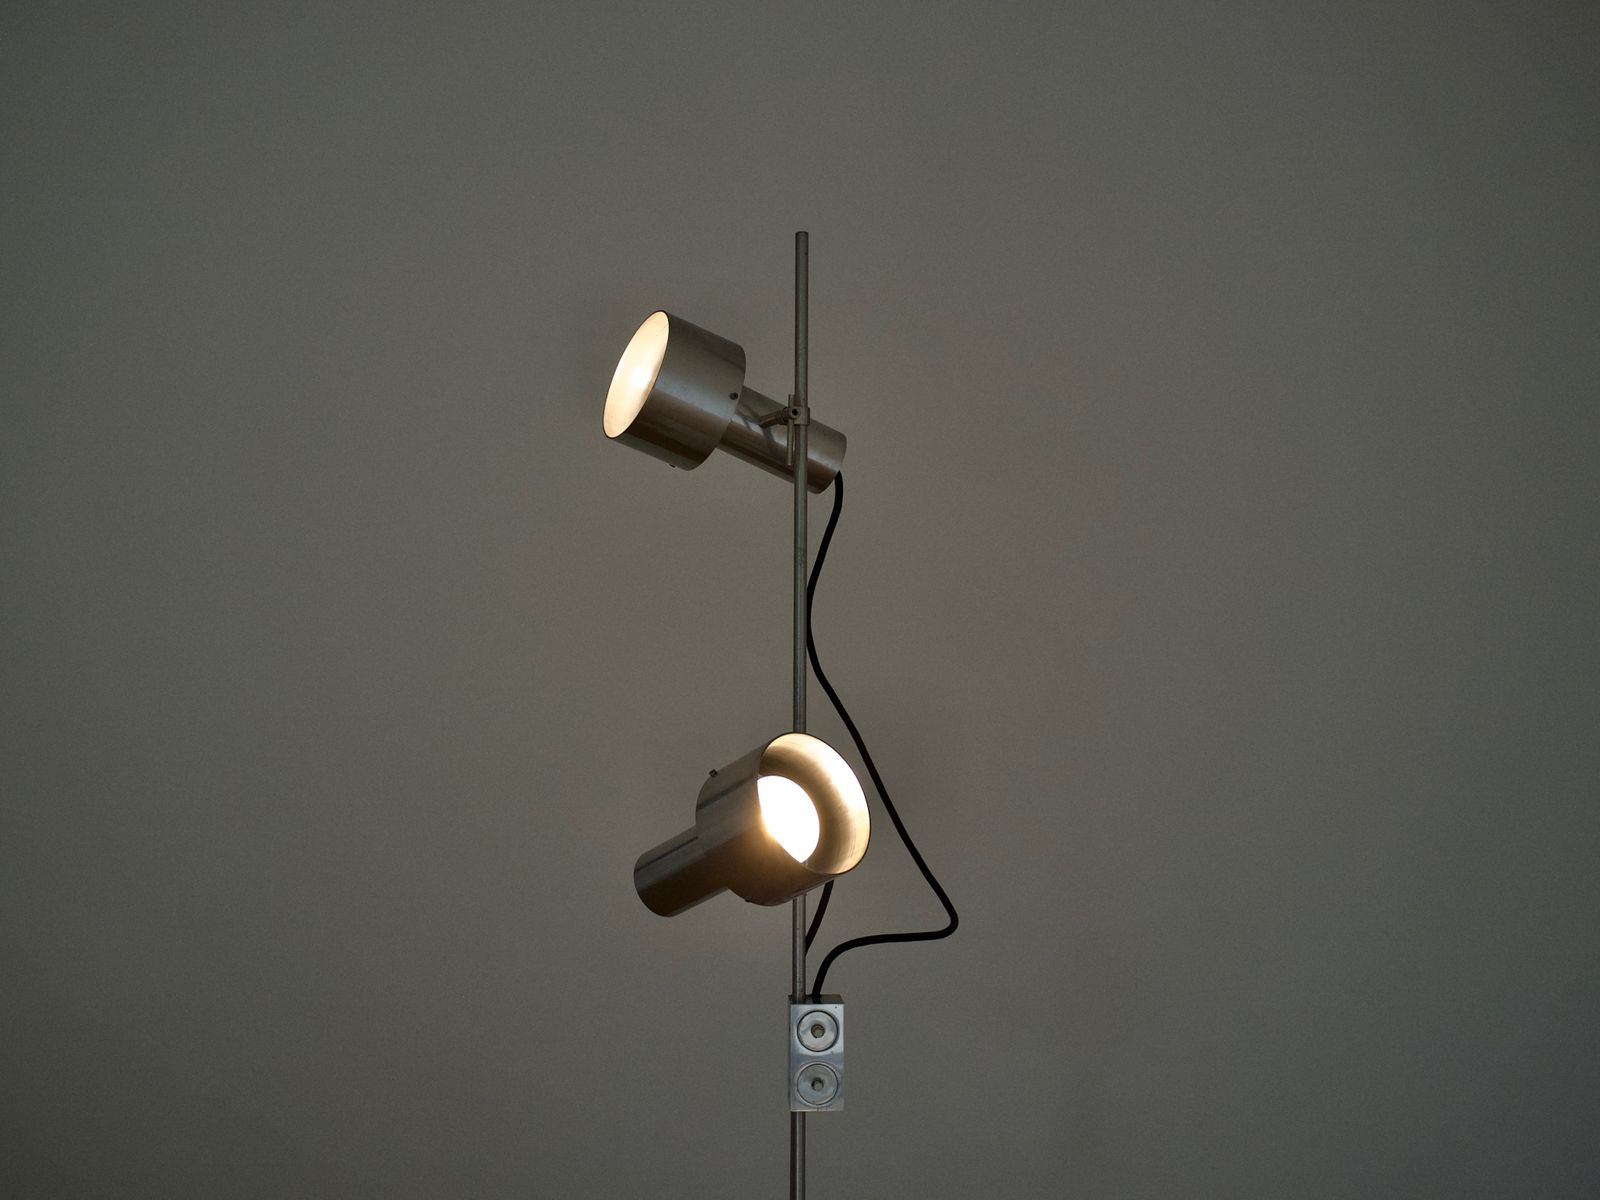 giant and seen interirors as costa architectural cofee a intuition floors lamps coffee in floor lamp interiors